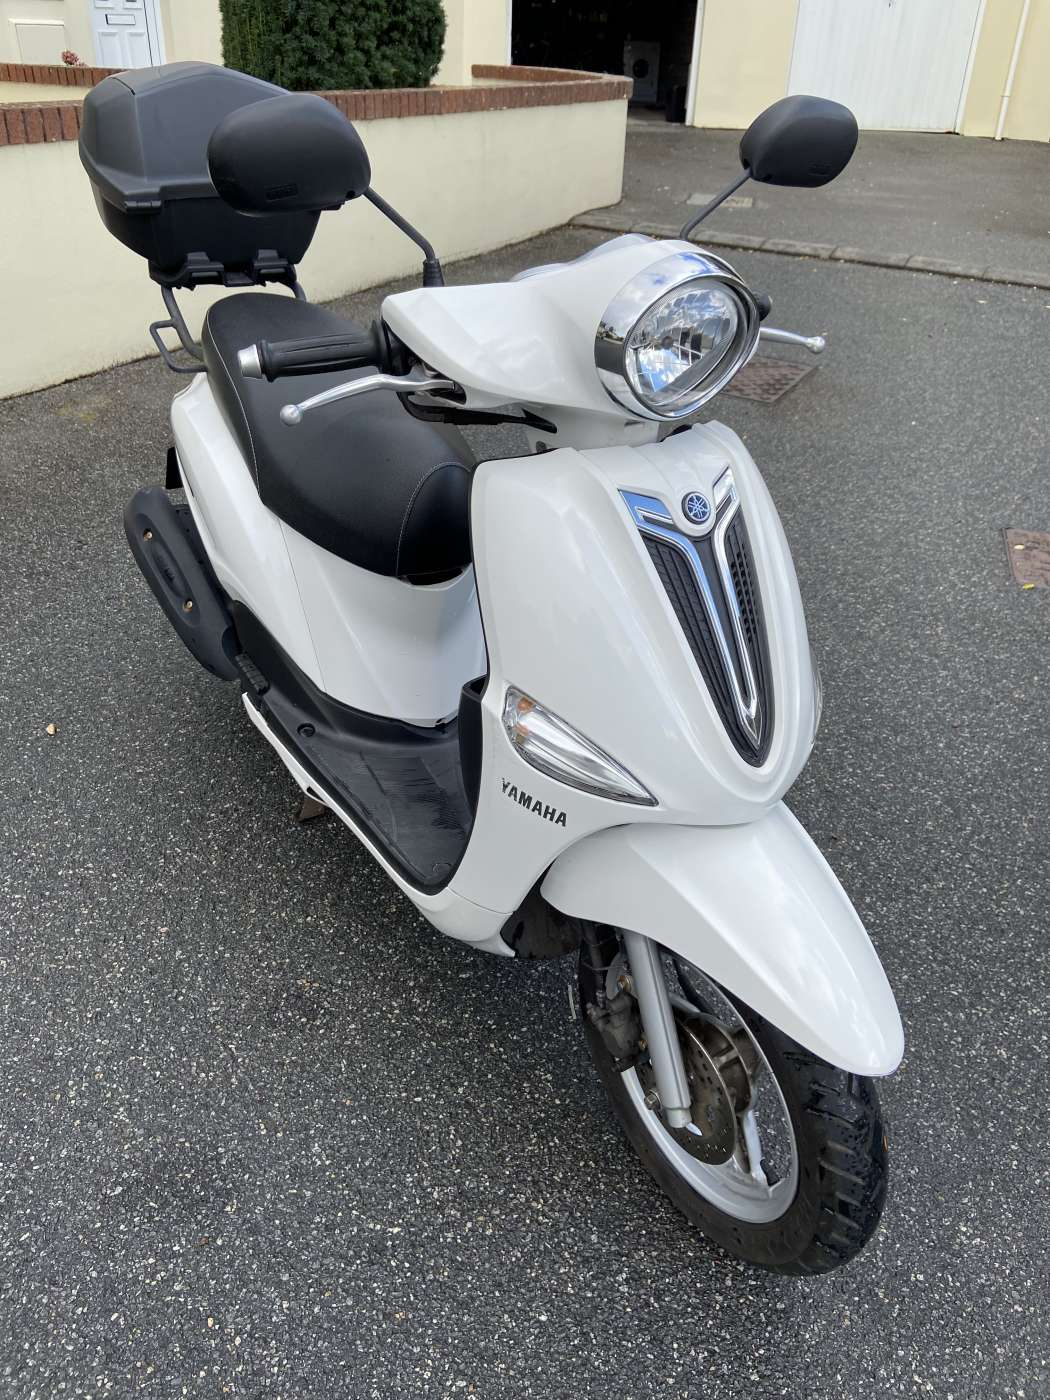 Yamaha Delight 125ccScooter